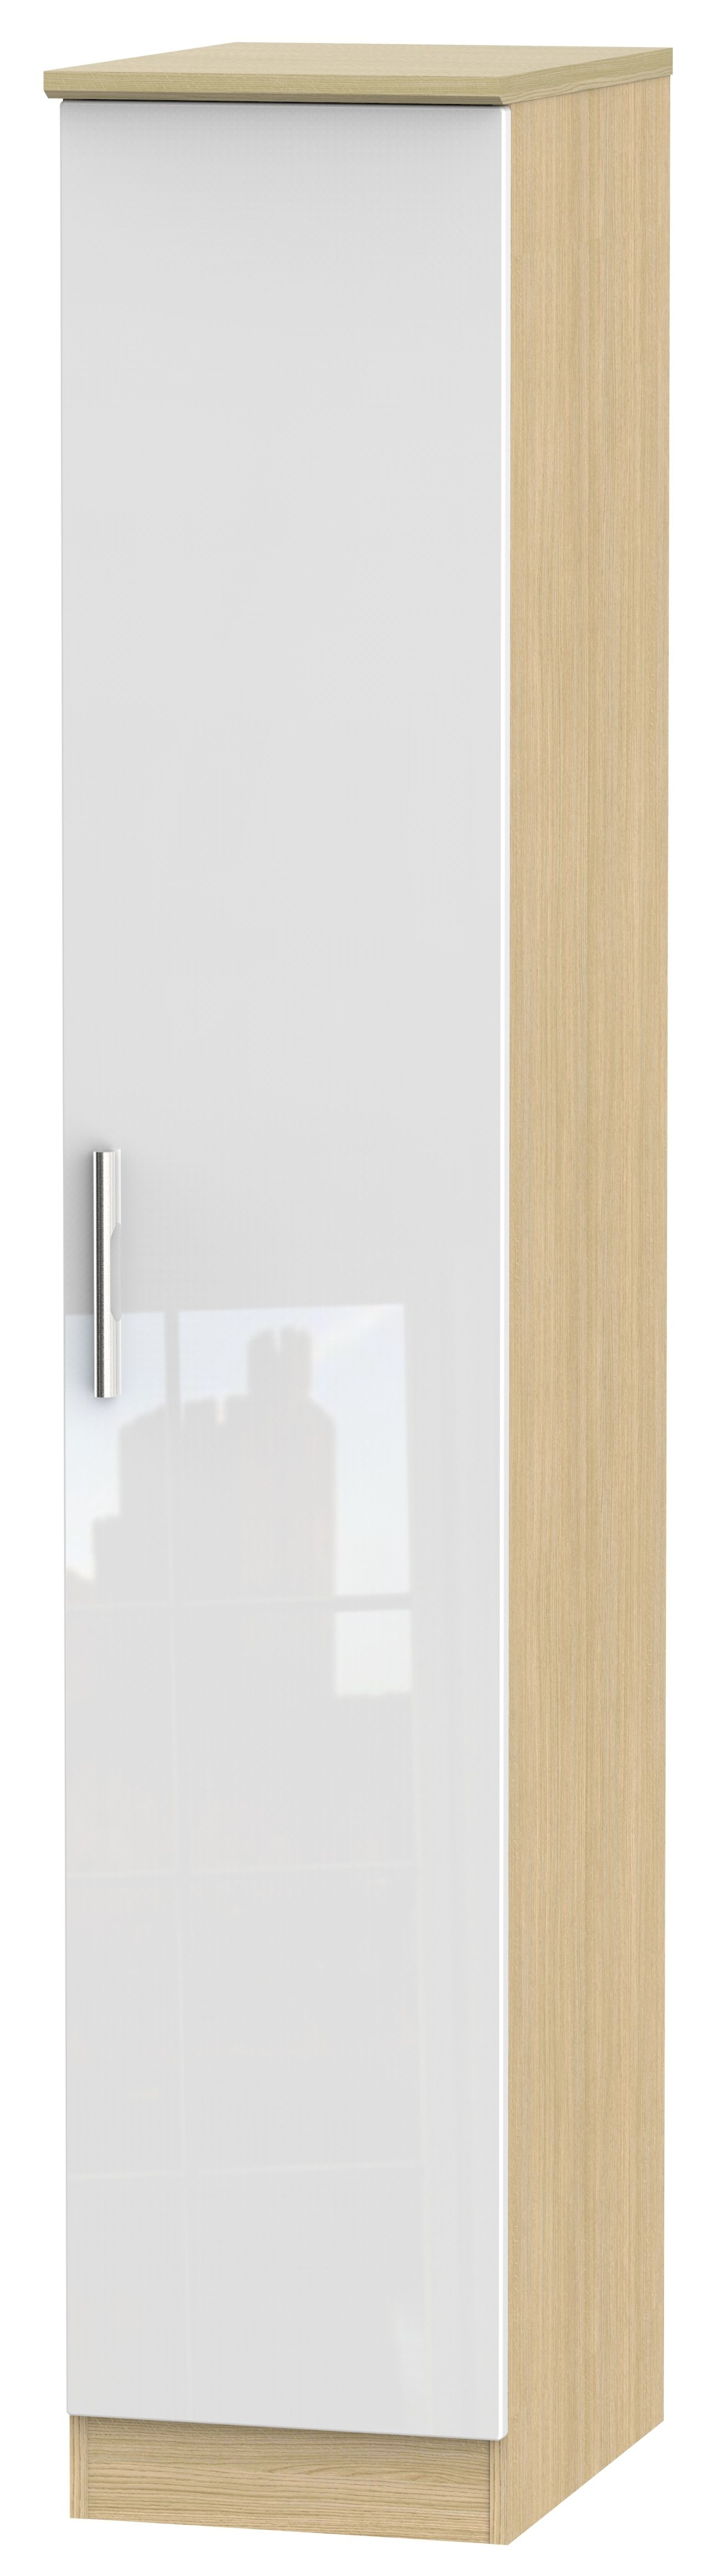 Clearance Half Price - Knightsbridge High Gloss White and Oak 1 Door Tall Single Wardrobe - New - 1054